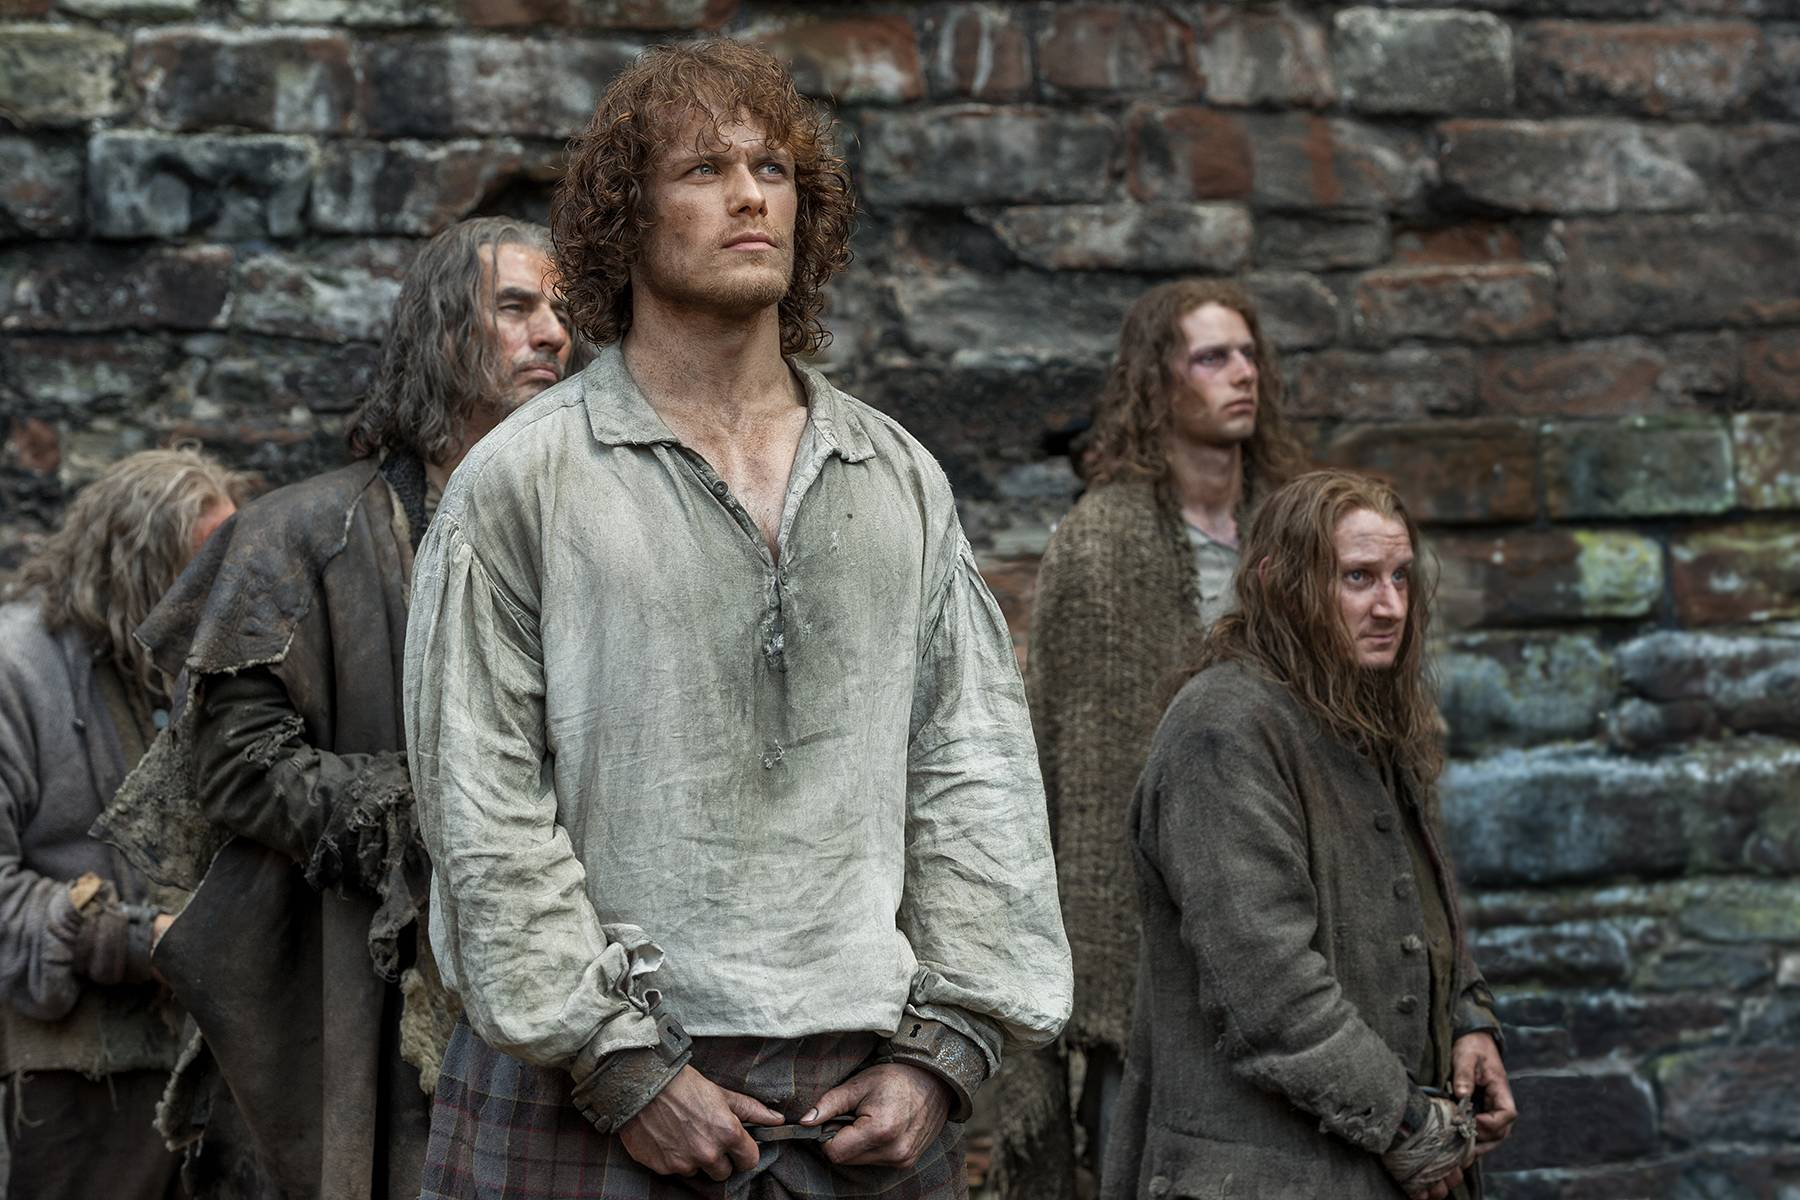 Outlander - Episode 1 15 - Wentworth Prison - Outlander 2014 TV Series    Outlander Tv Series